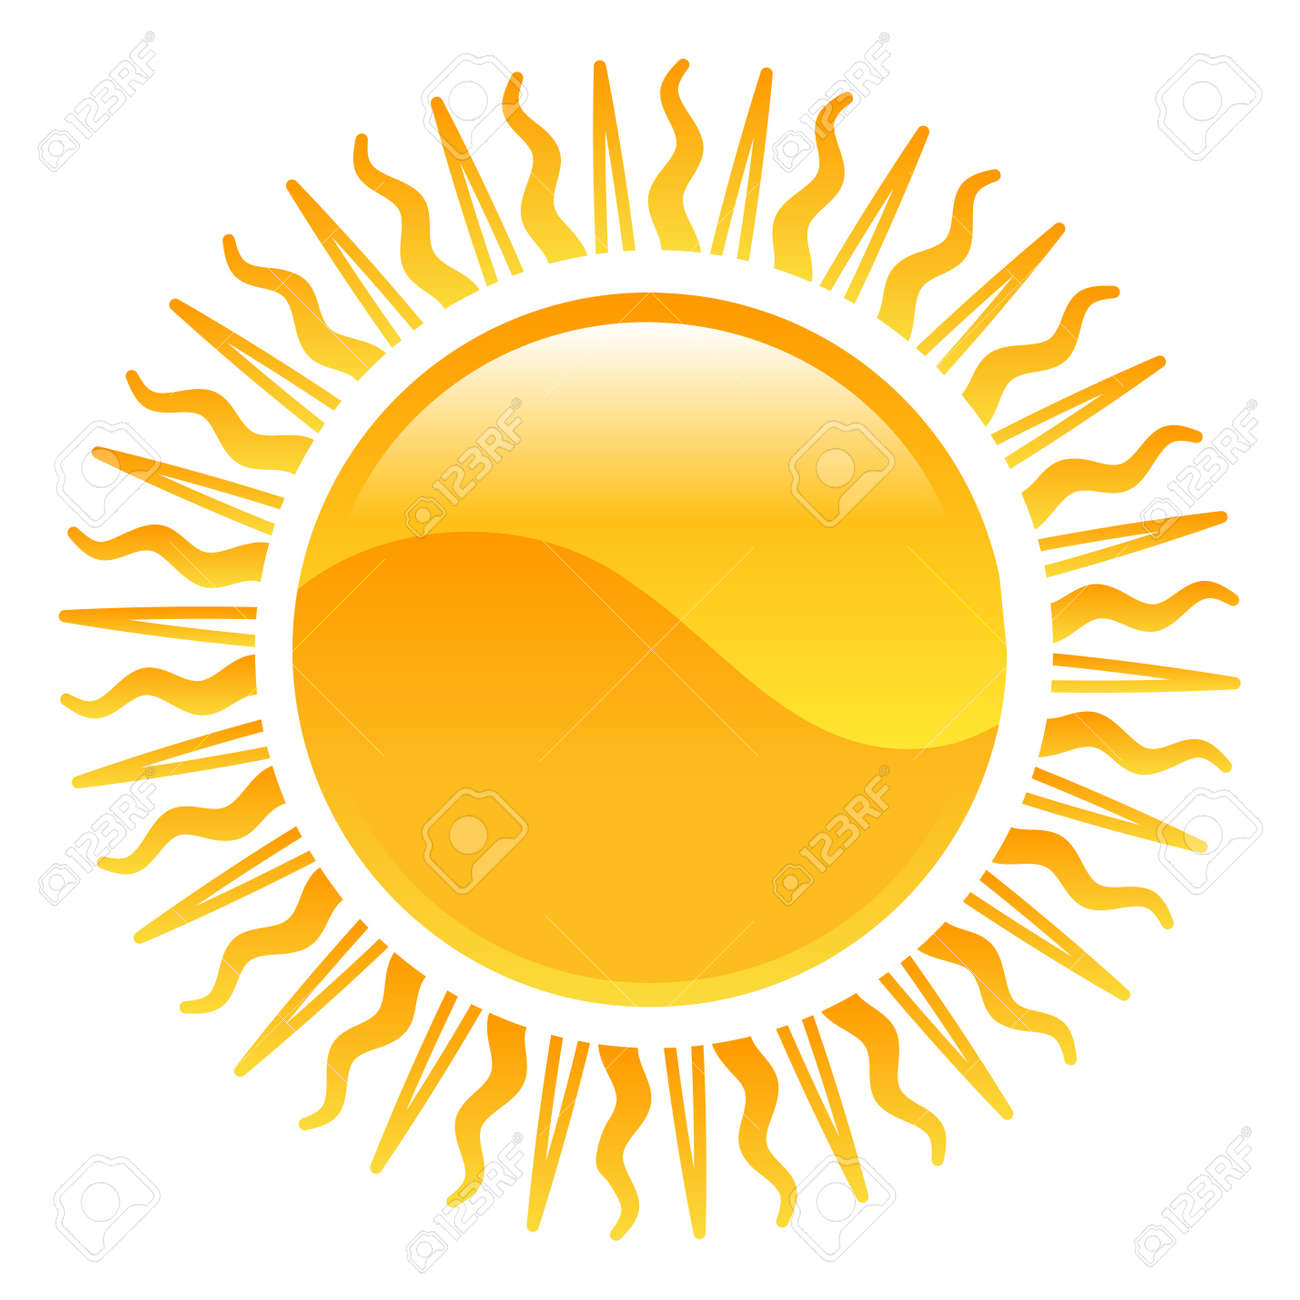 Weather Icon Clipart Sun Illustration Royalty Free Cliparts Vectors And Stock Illustration Image 21683605